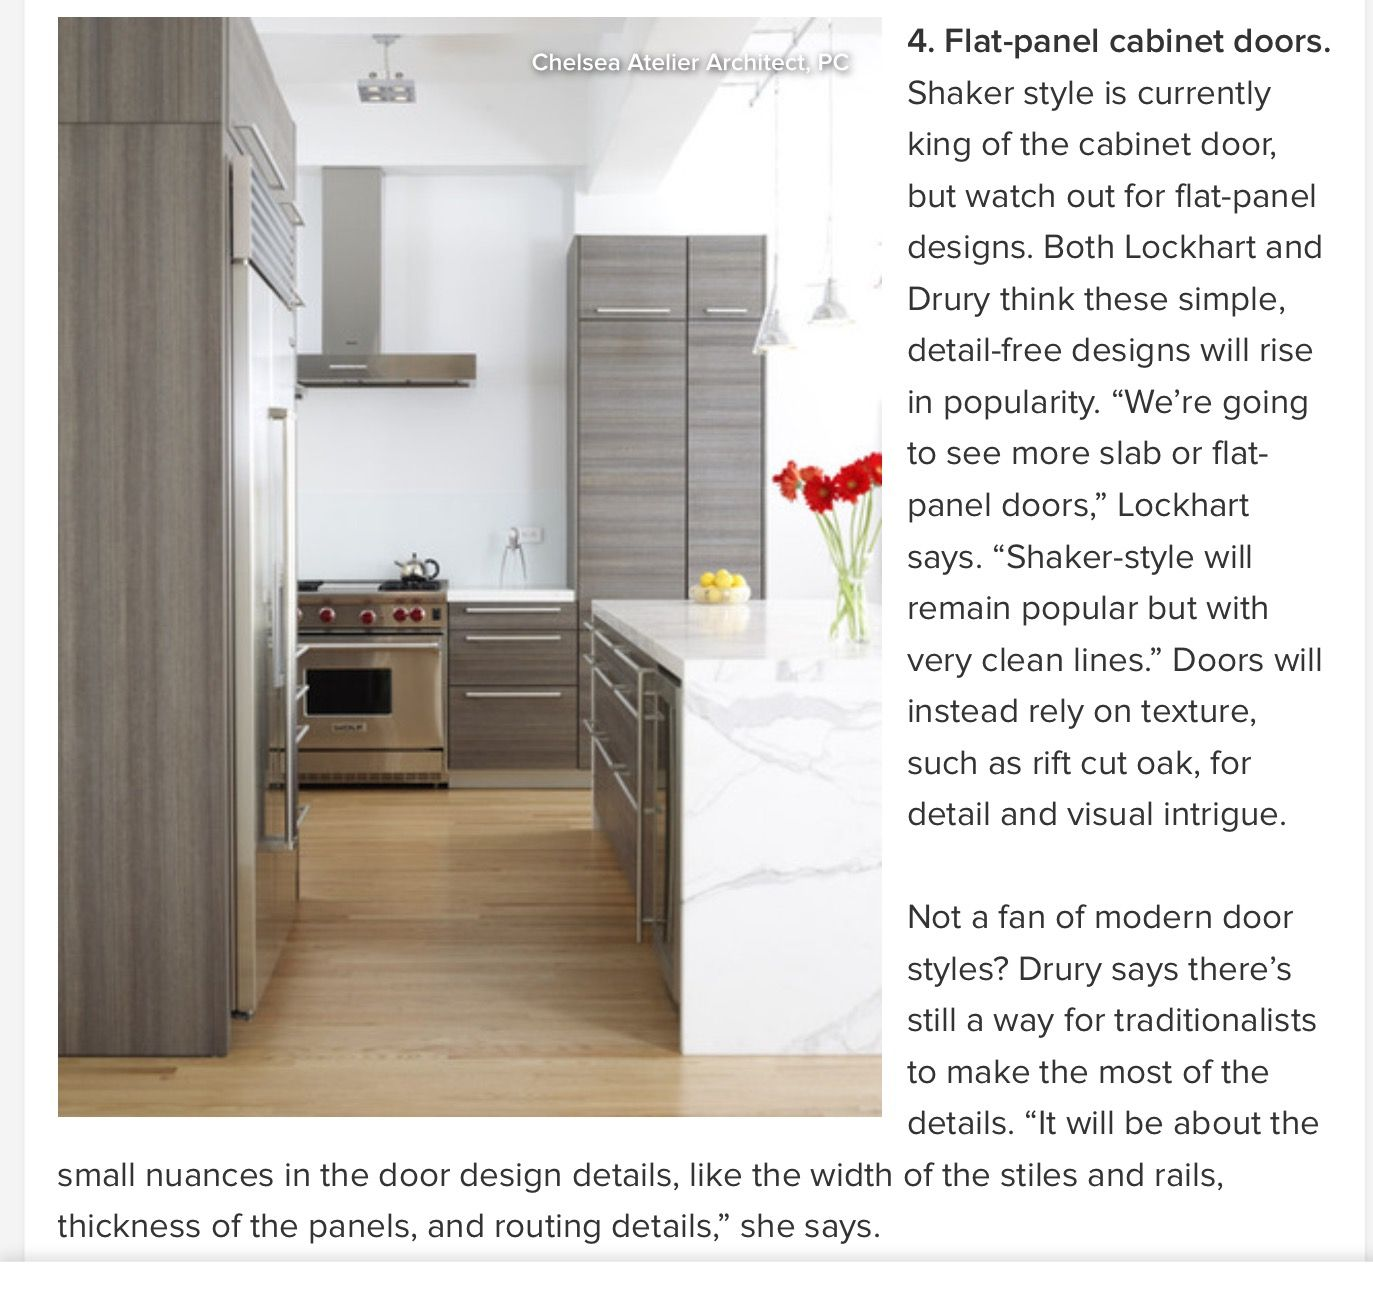 Flat Paneled Doors With Texture Pretty Grey Tones Would Look Good W Your Fl Modern Kitchen Cabinet Design Contemporary Kitchen Cabinets Modern Kitchen Design